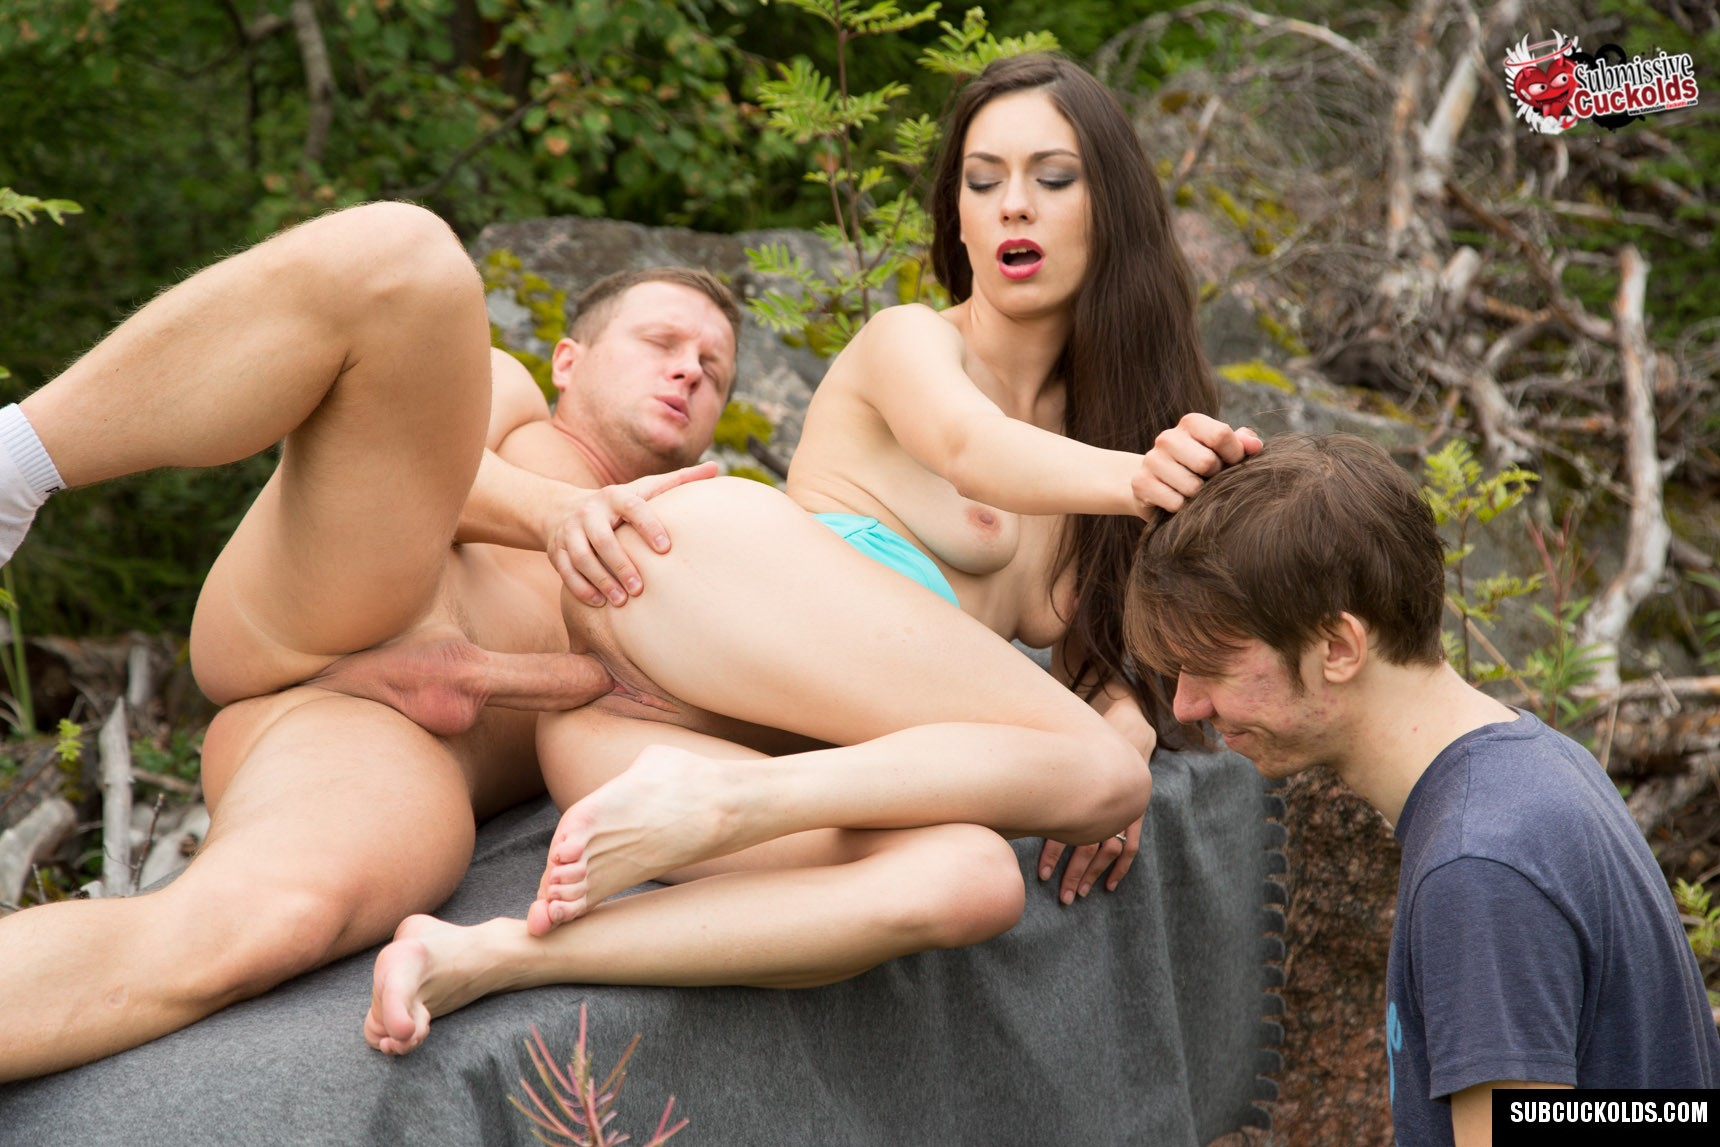 Cuckolding in the woods - Submissive Cuckolds gallery